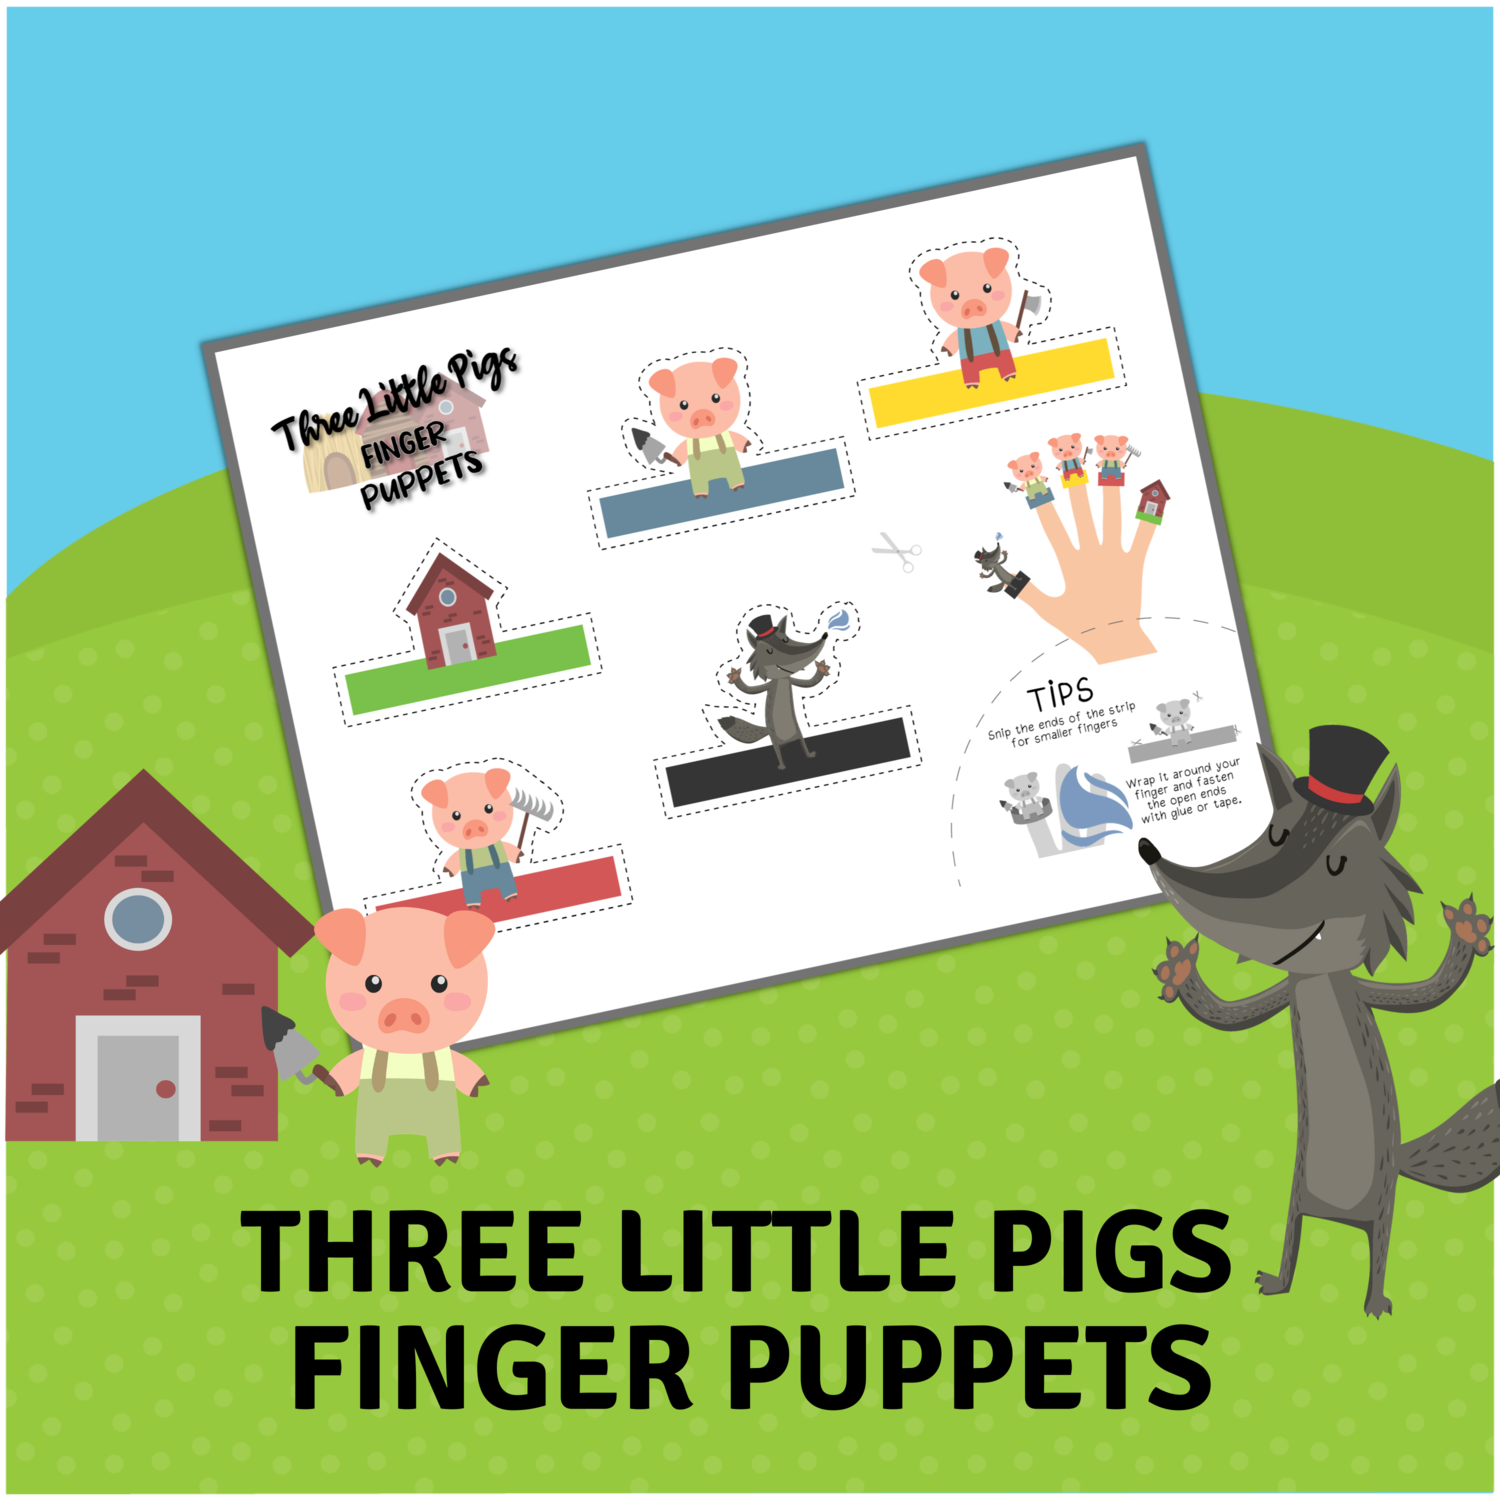 Three Little Pigs Finger Puppets for Amanda